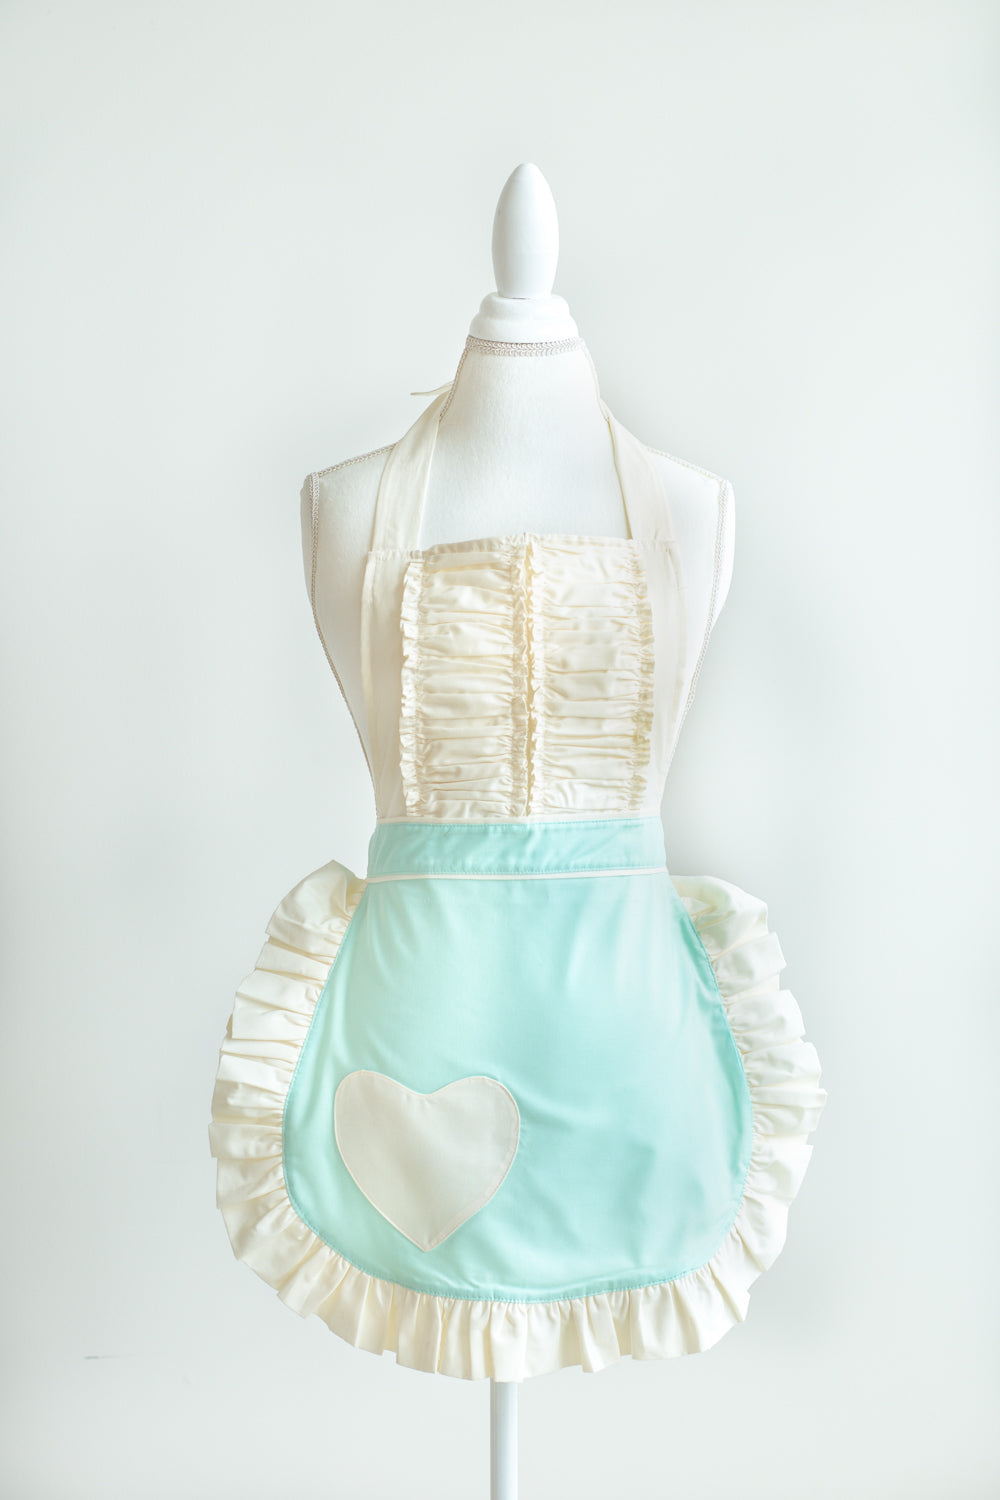 Vintage darling apron in mint